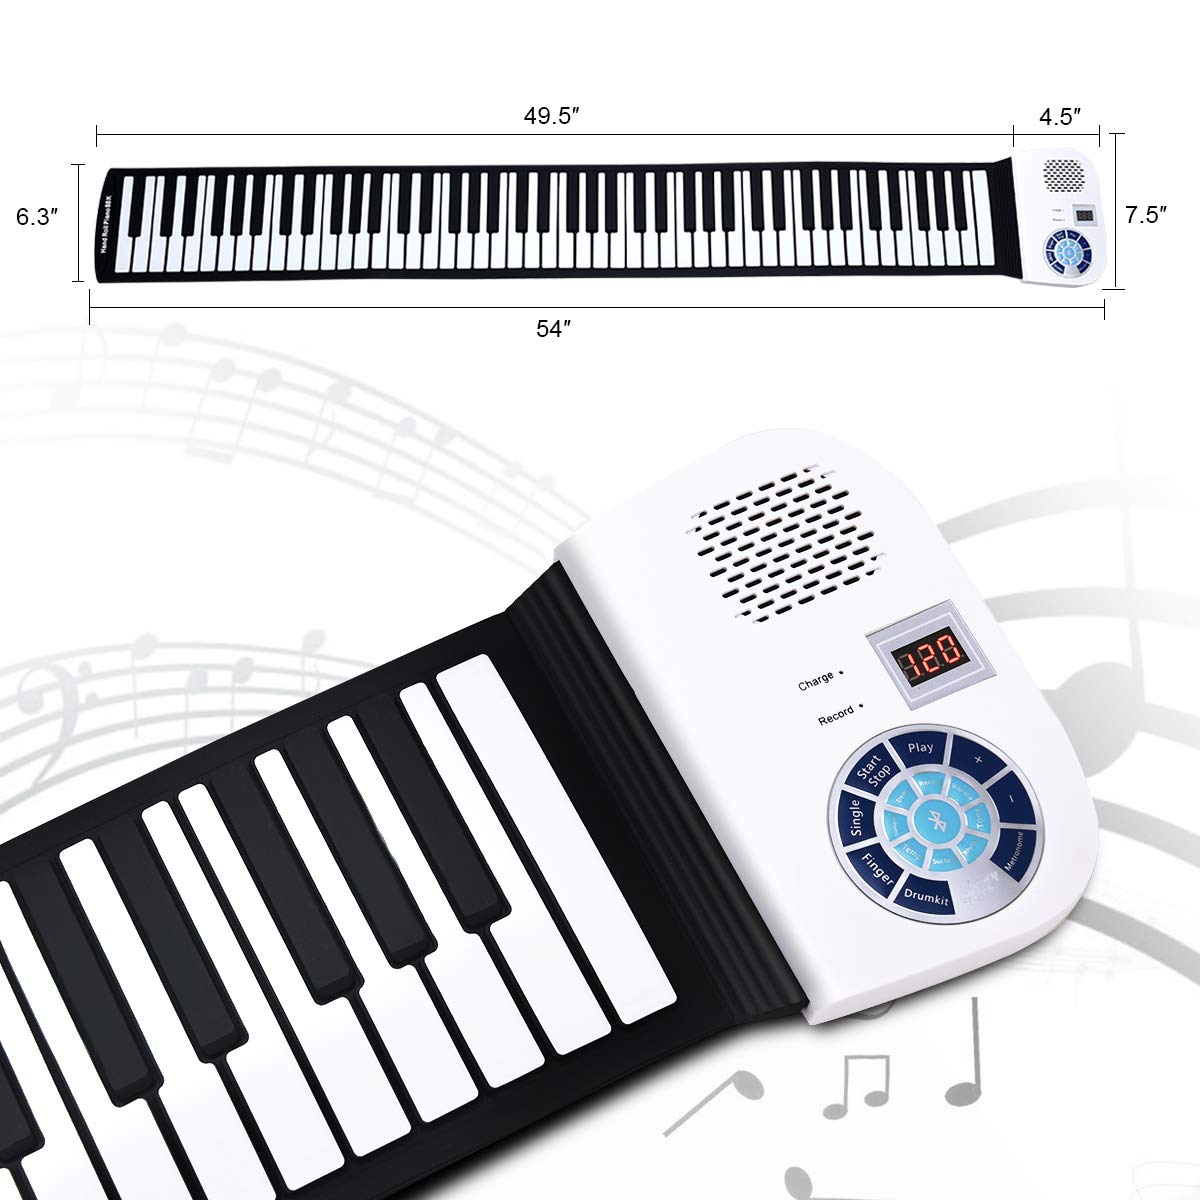 BABY JOY Roll Up Piano, Upgraded Electronic Piano Keyboard, Portable Piano w/Bluetooth, MP3 Headphone USB Input, MIDI OUT, 128 Rhythms, Record, Play, Volume Control (White, 88Keys) by BABY JOY (Image #3)